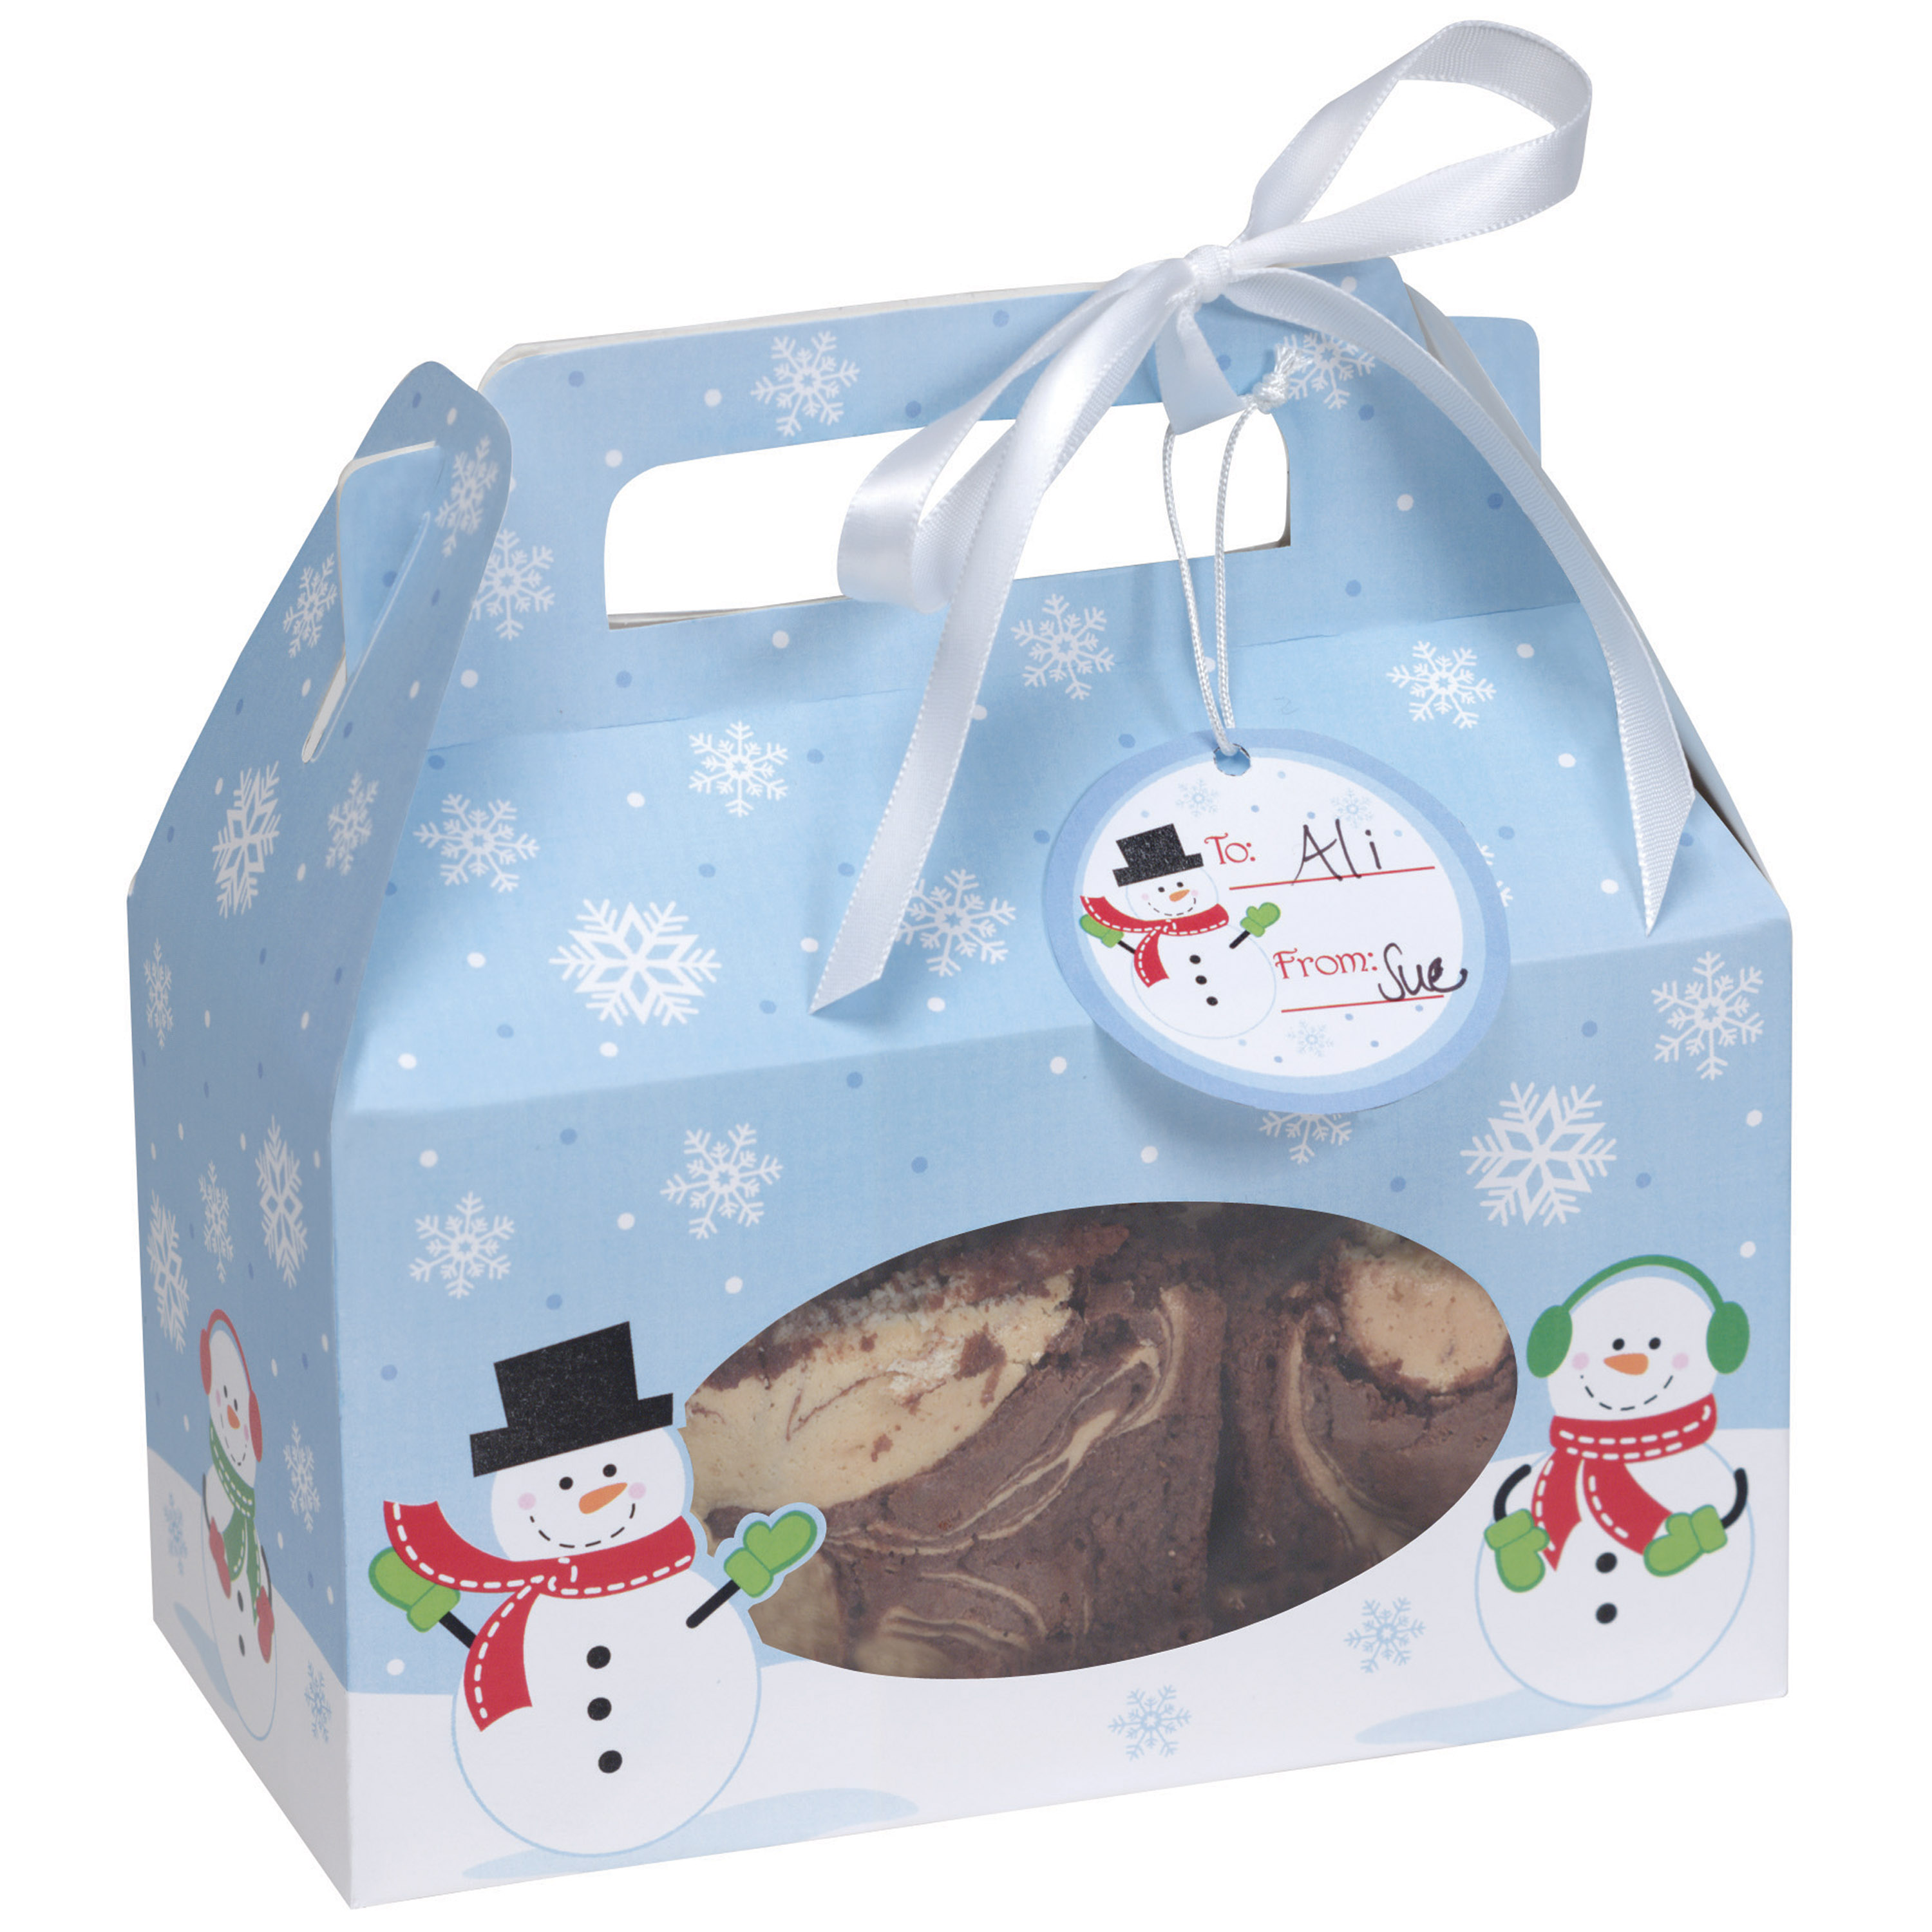 Snowman Cookie Box, 4 pack